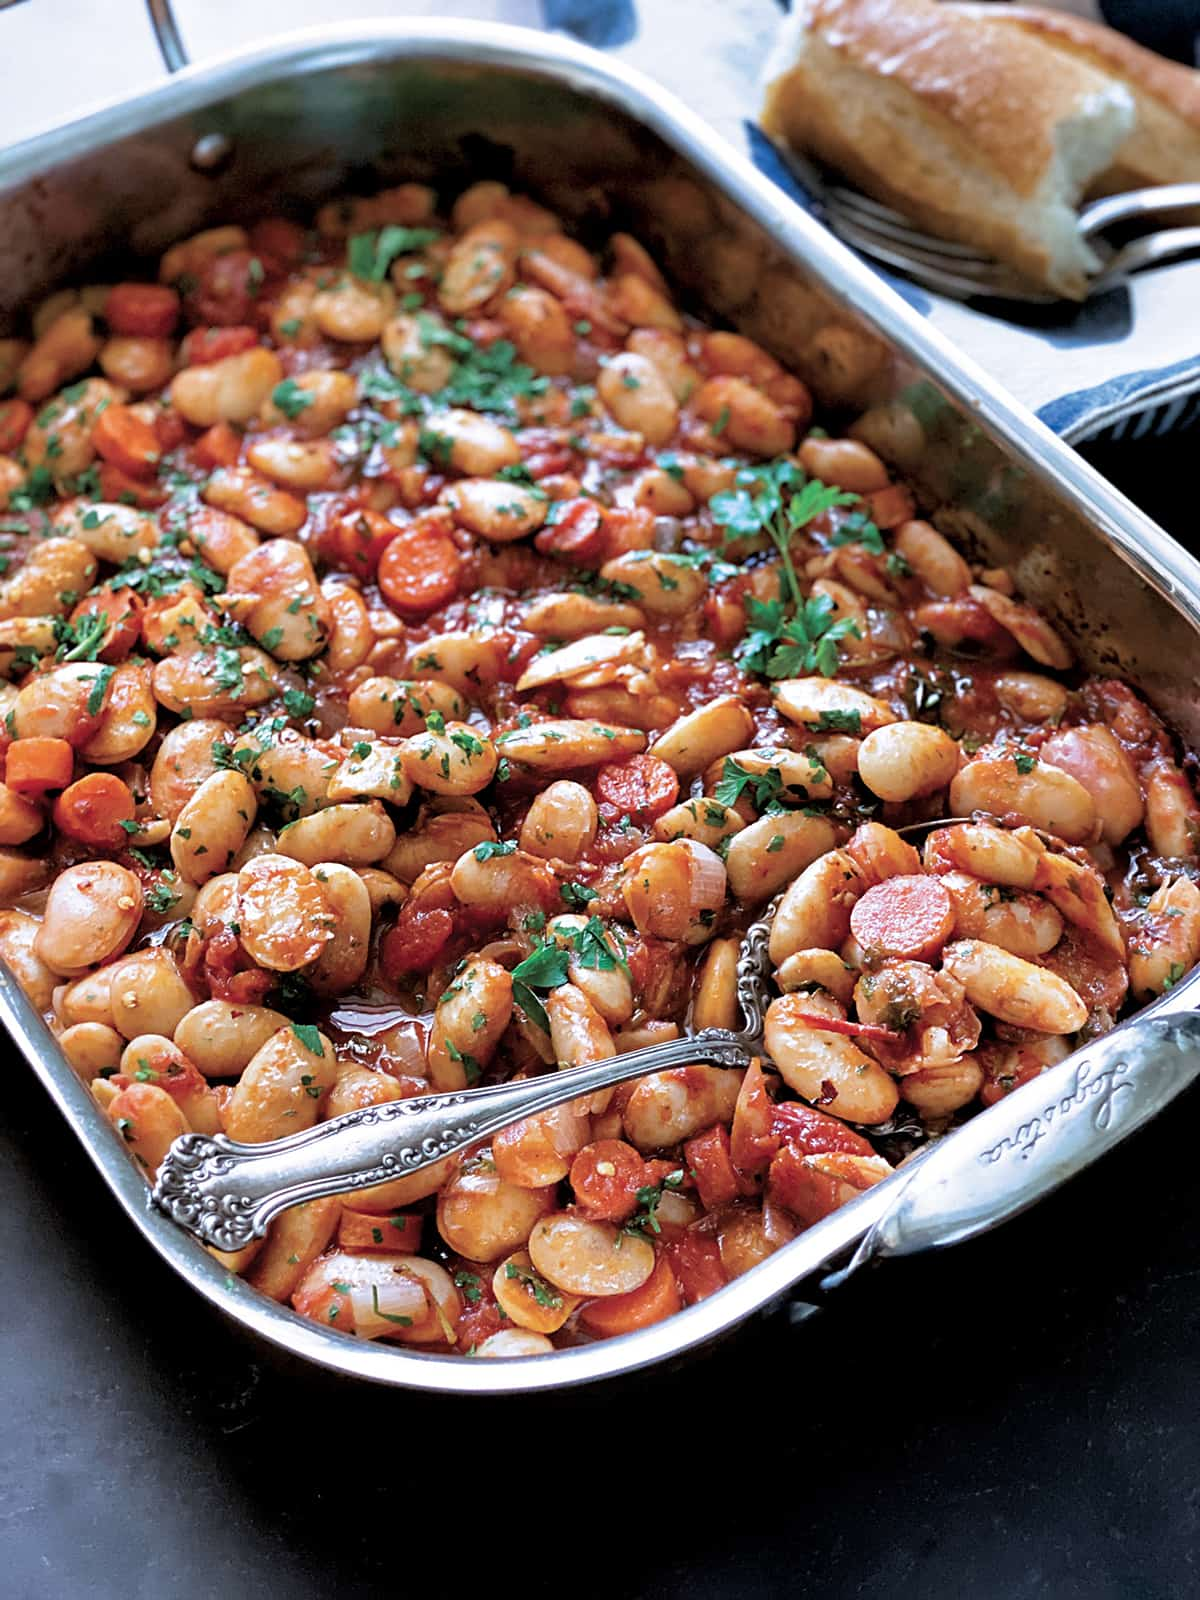 A baking pan with gigantes beans, carrots, fresh parsley and a spoon. A napkin with serving utensils and pieces of bread on the side.